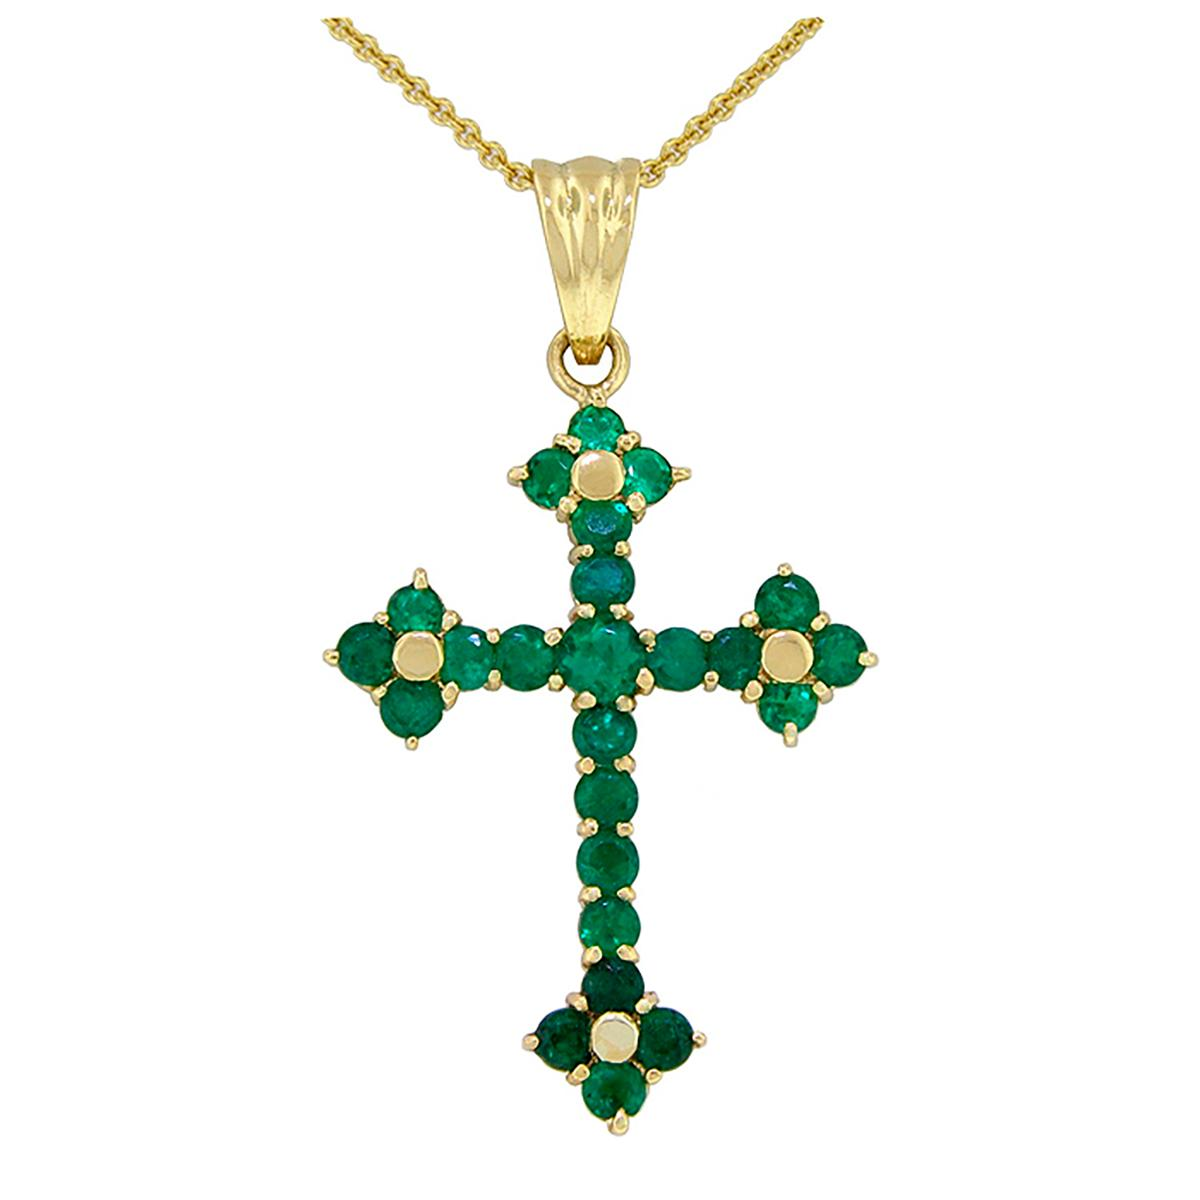 cross-emerald-pendant-in-18k-yellow-gold-with-25-round-cut-emeralds